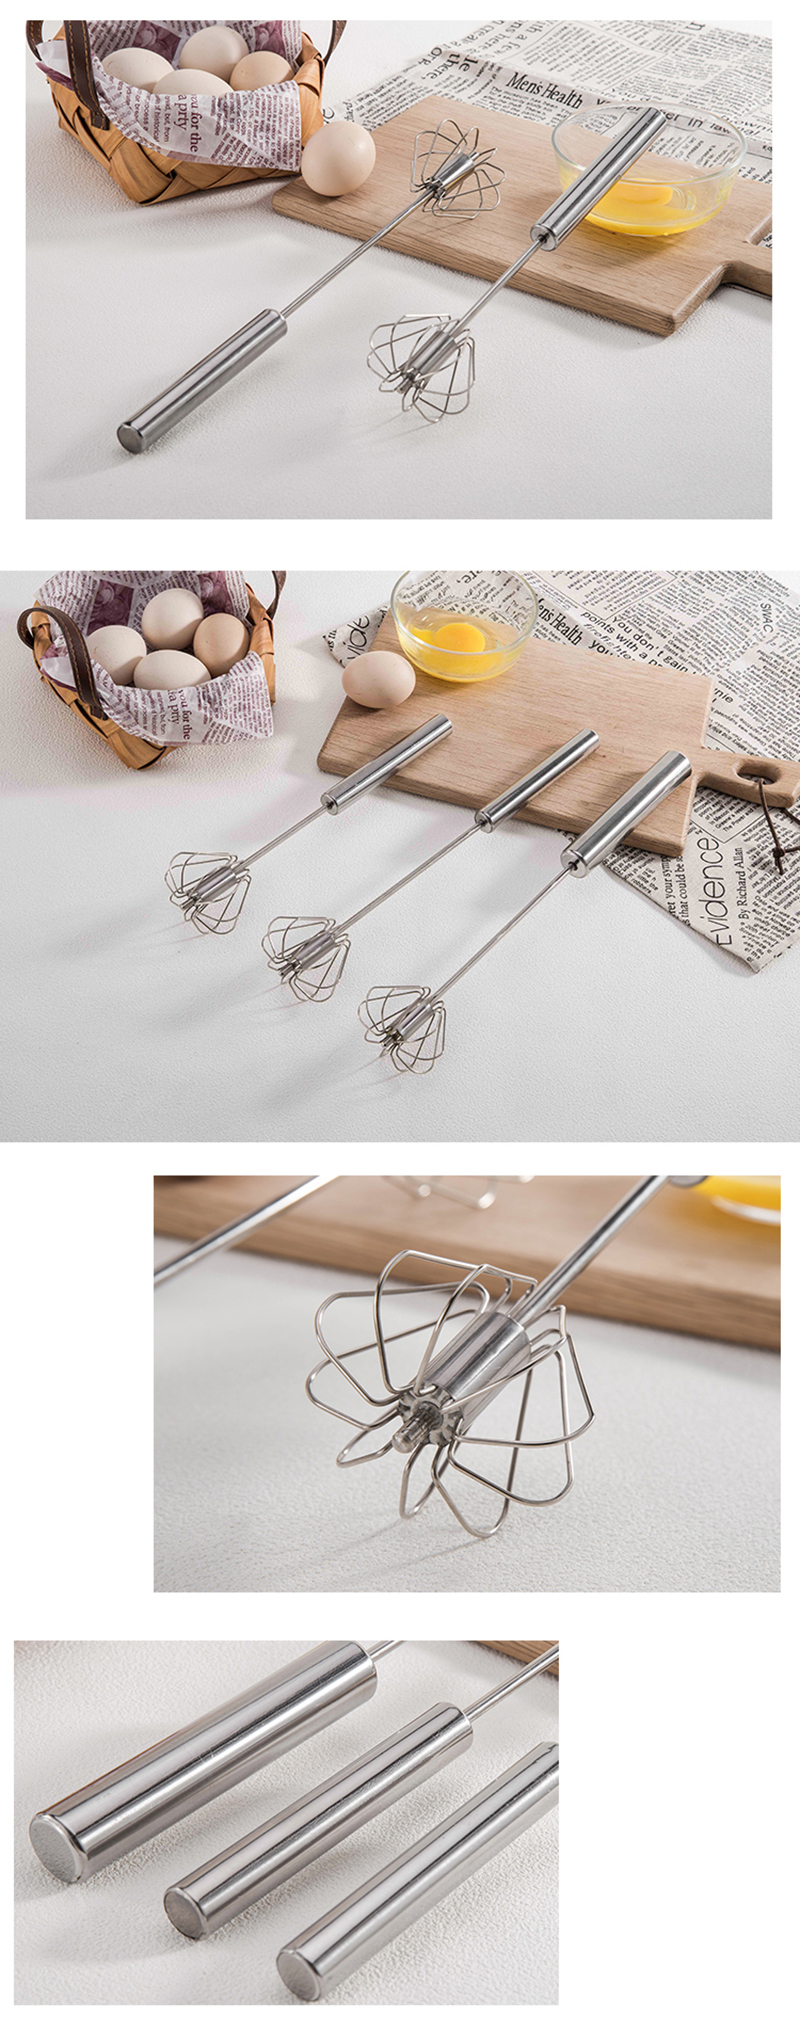 Manual Stainless Steel Kitchen Mixer Semi-automatic Milk Frother Egg Beater Foam Maker Coffee Drink Latte Cappuccino Mixer Mixer 9